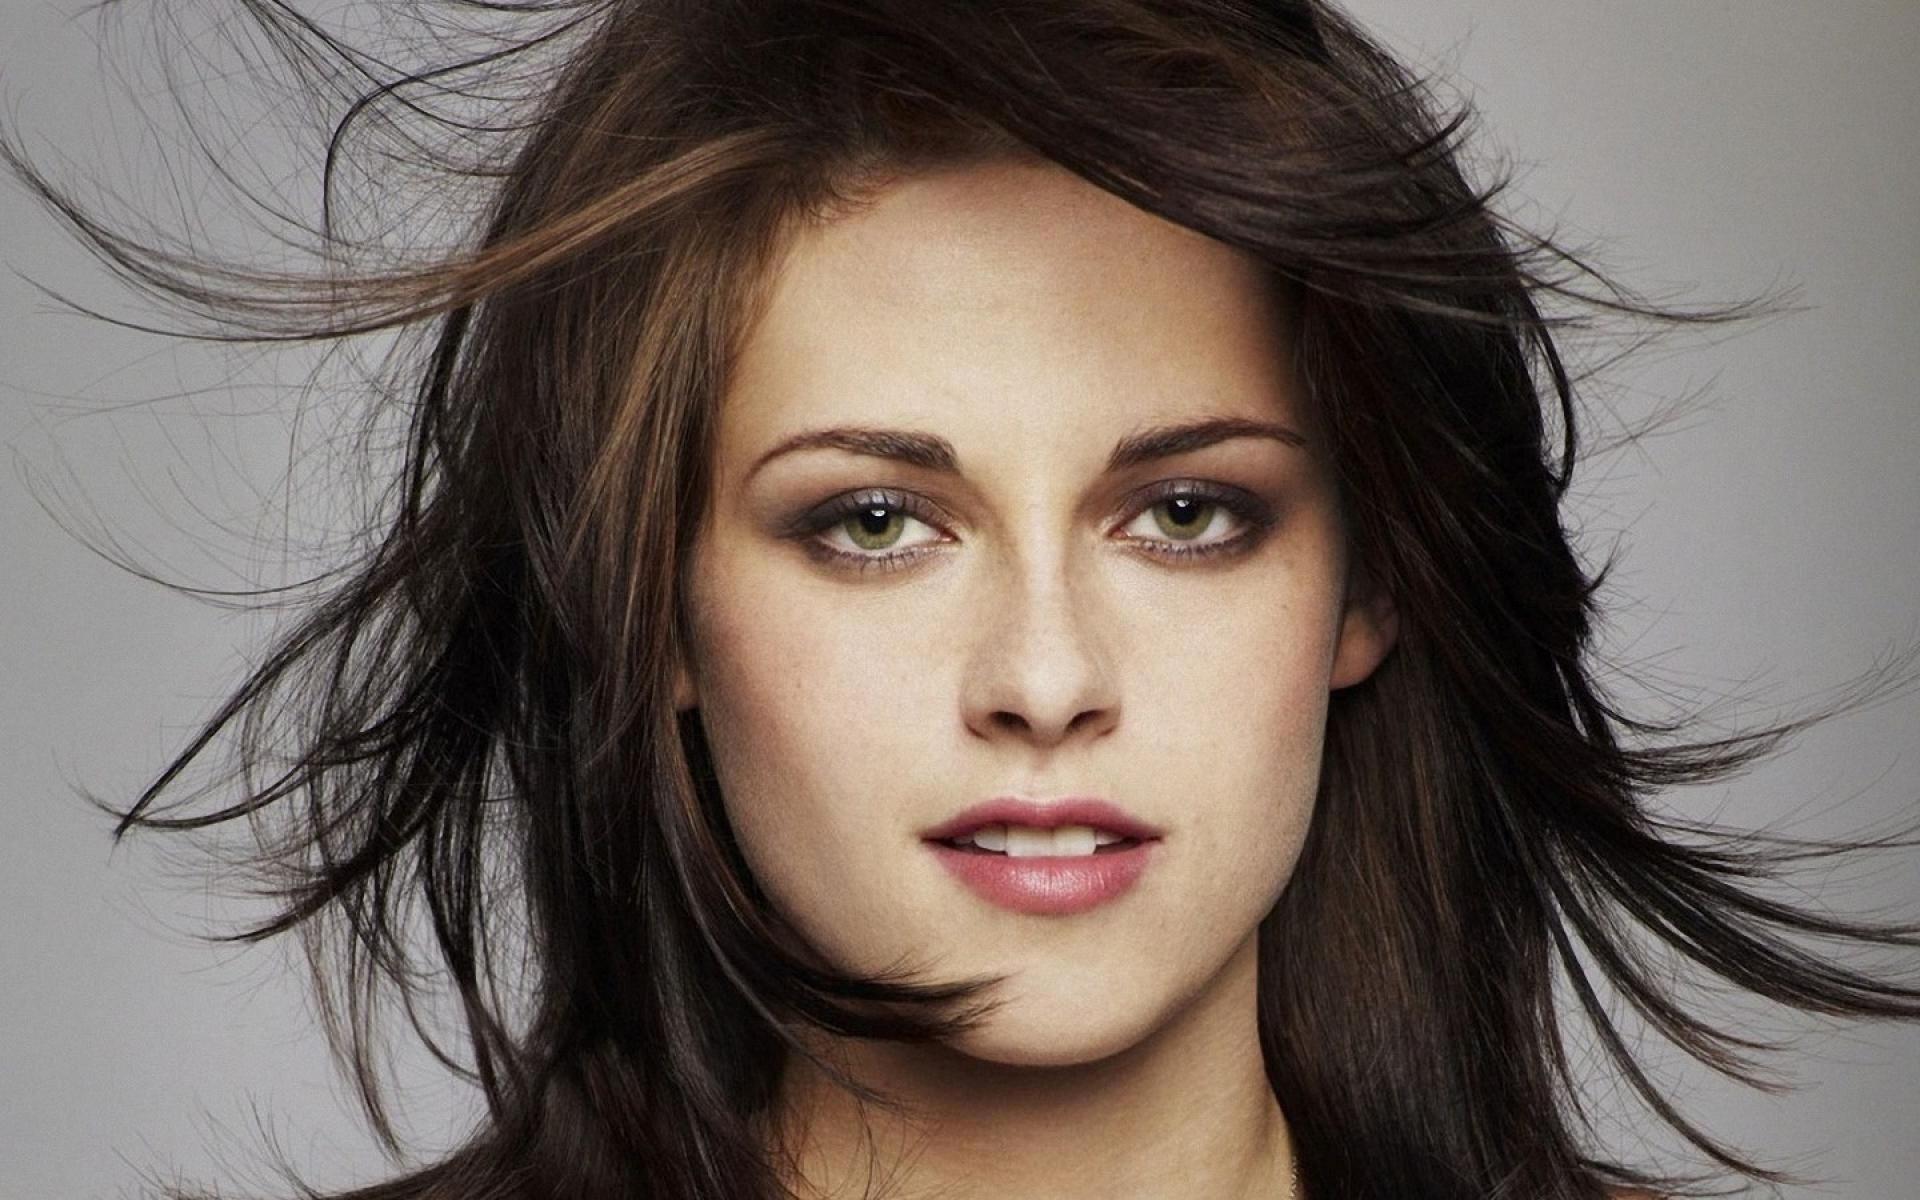 Res: 1920x1200, Kristen Stewart Wallpapers | Free Download HD Beautiful Actress Images